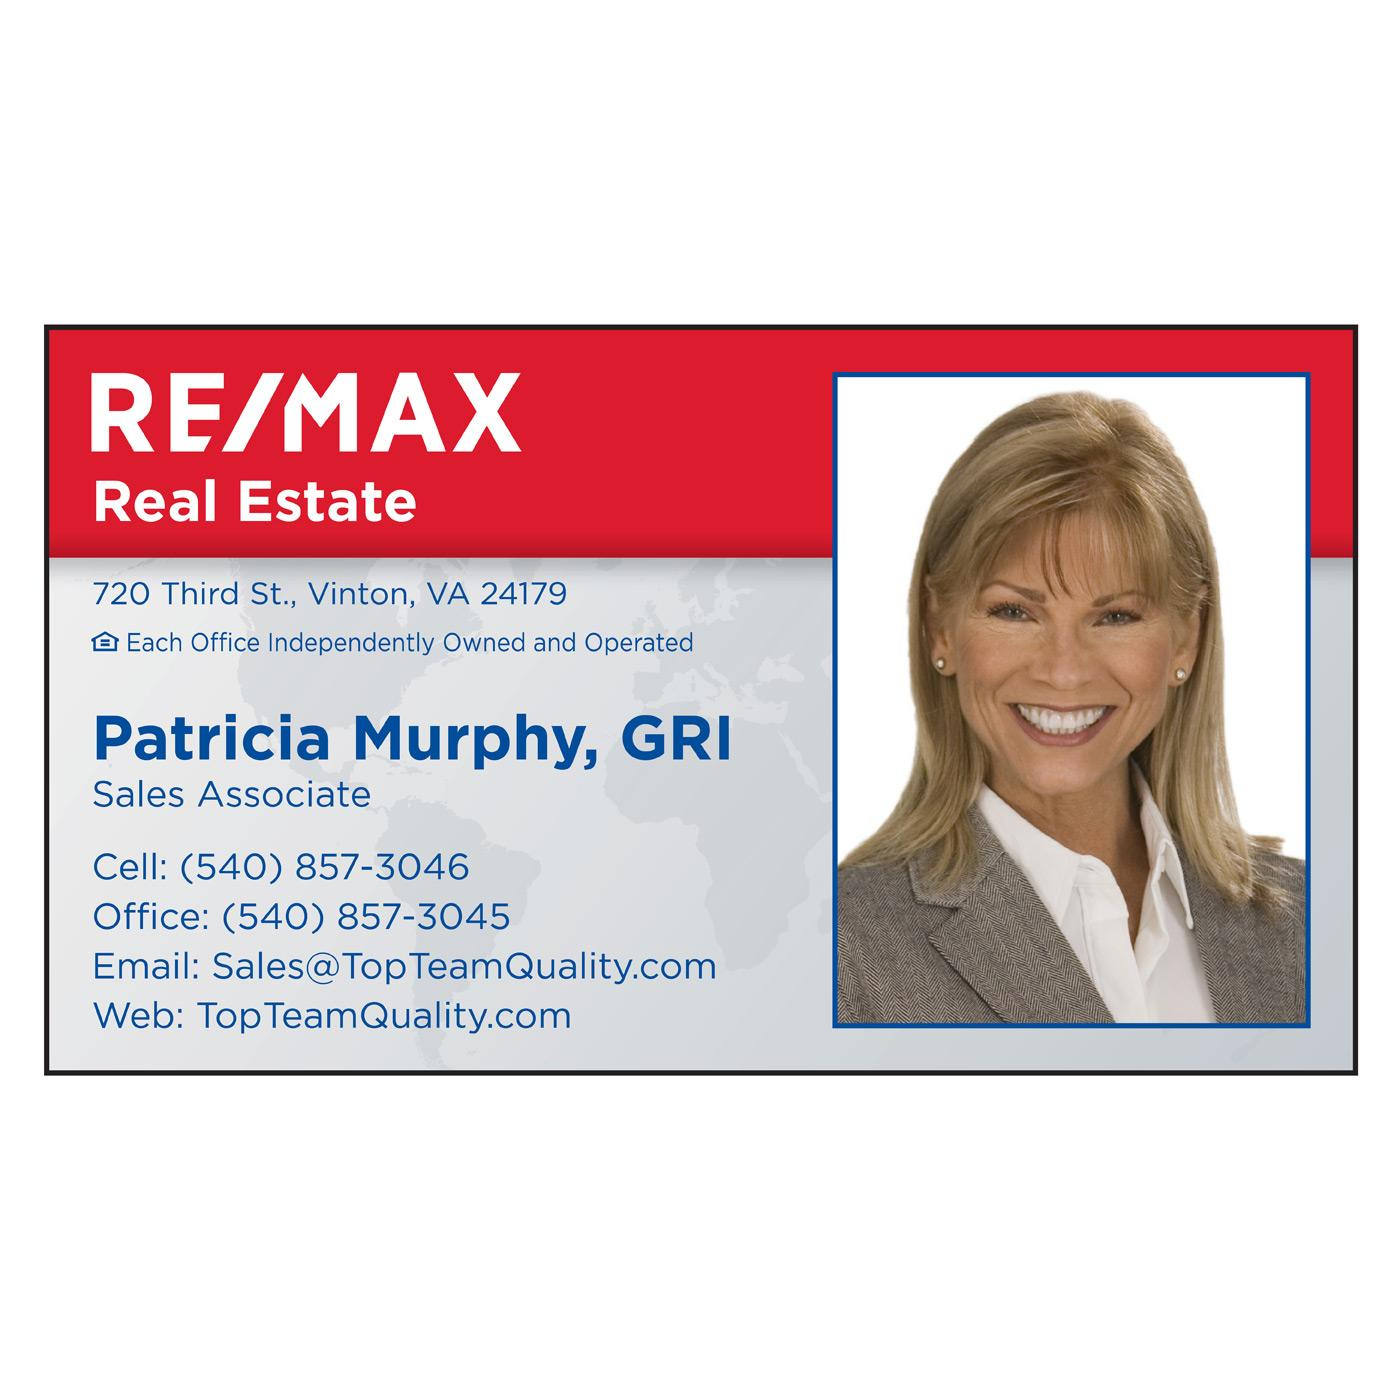 Photo Right RE/MAX Business Card